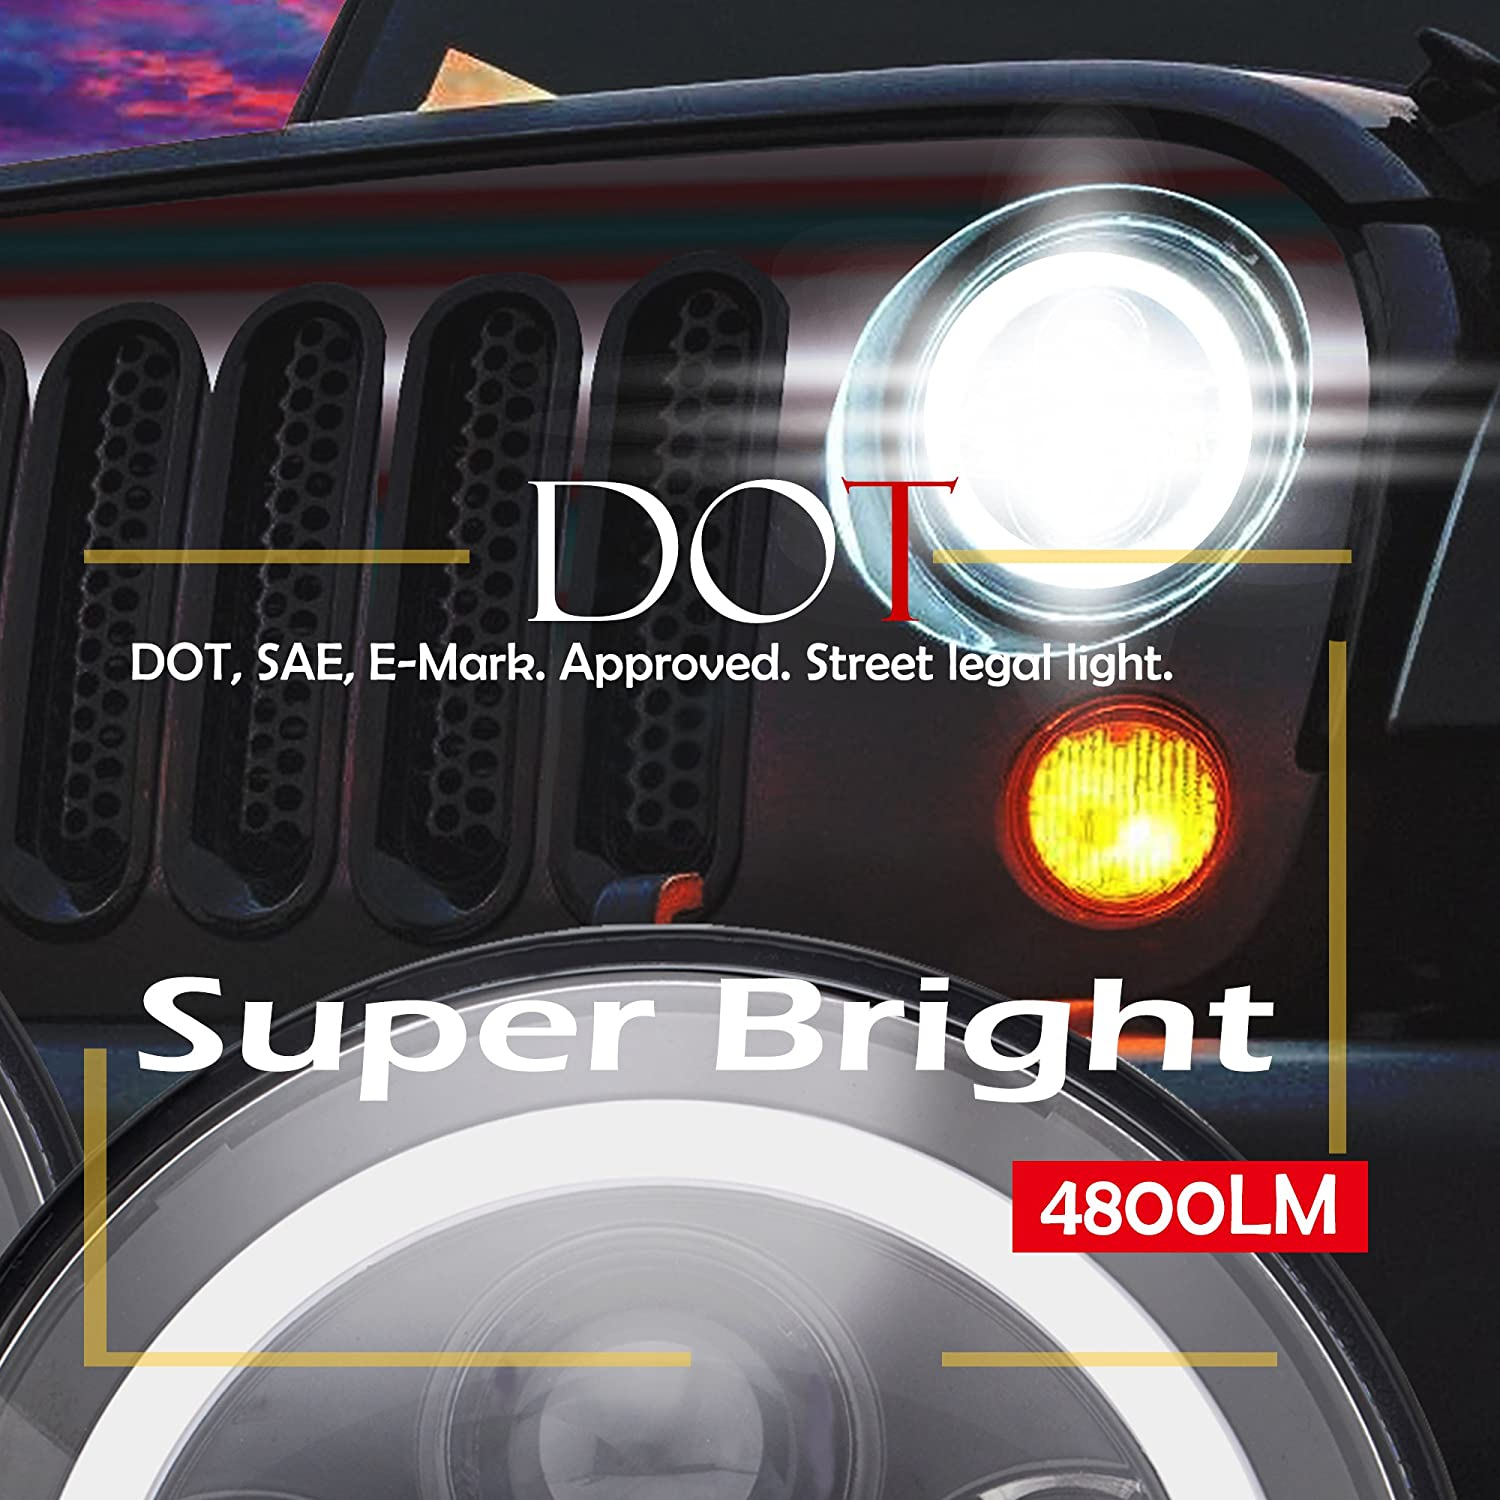 DRL TURBO SII DOT Approved Pair 7 Inch 75W Round LED Headlights For Jeep Wrangler JK TJ LJ 1997-2017 Turn Lights With Hi//Lo Beam Daytime Running Light 2 Pack)